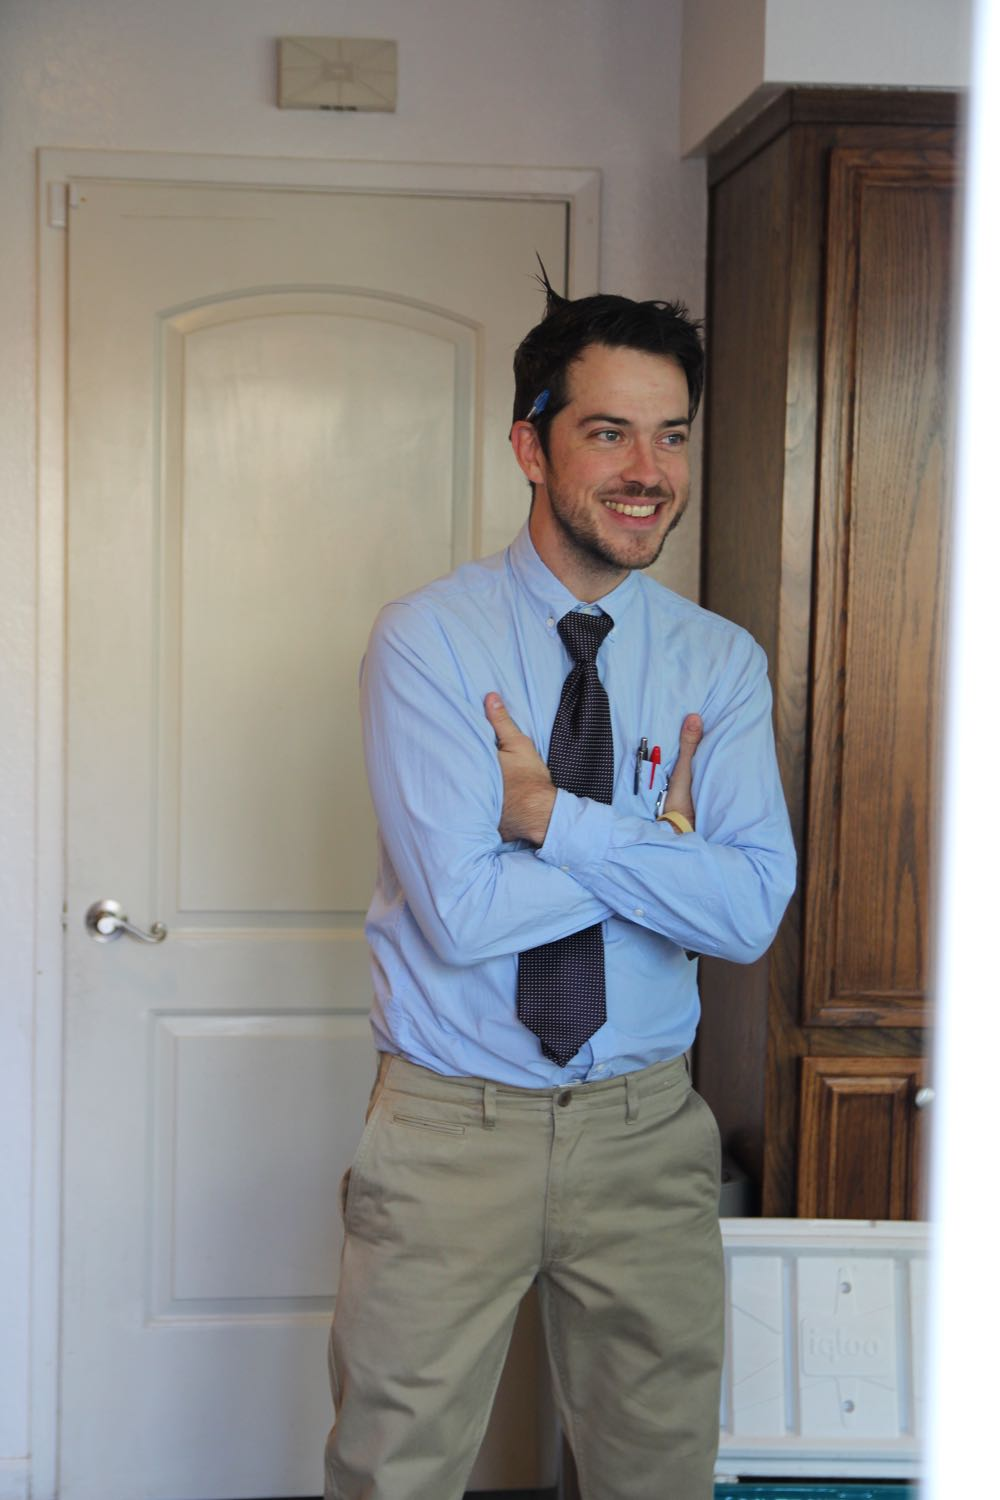 Easy costume idea for men: Dress up as The Man